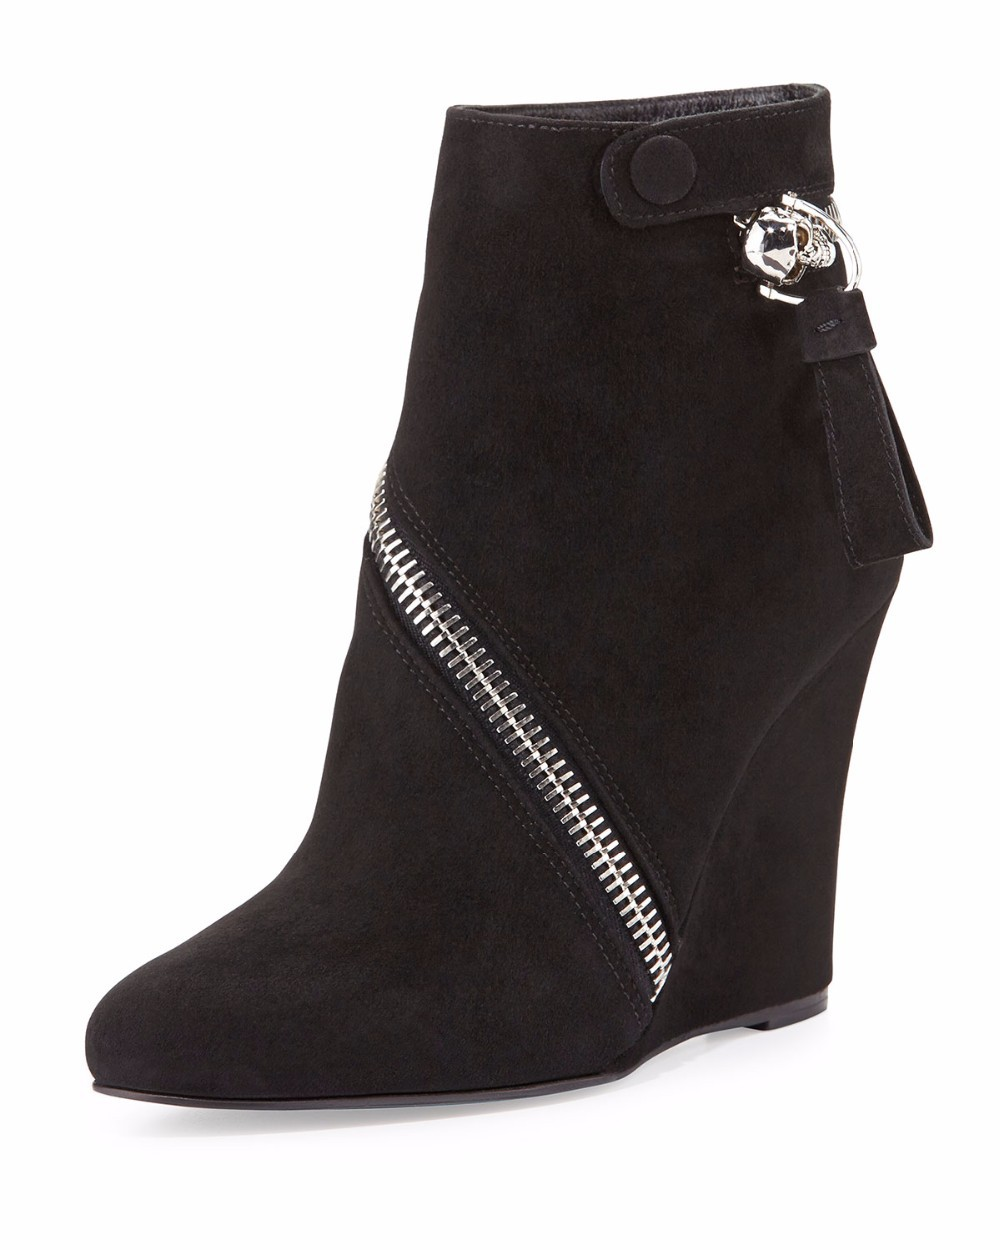 a2bc1b73433b 2018 New Fashion Women Button Buckle Strap Wedges Ankle Boots Concise  Zipper High Heel Shoes Booties Black. LISSE 1 1 2 3 4